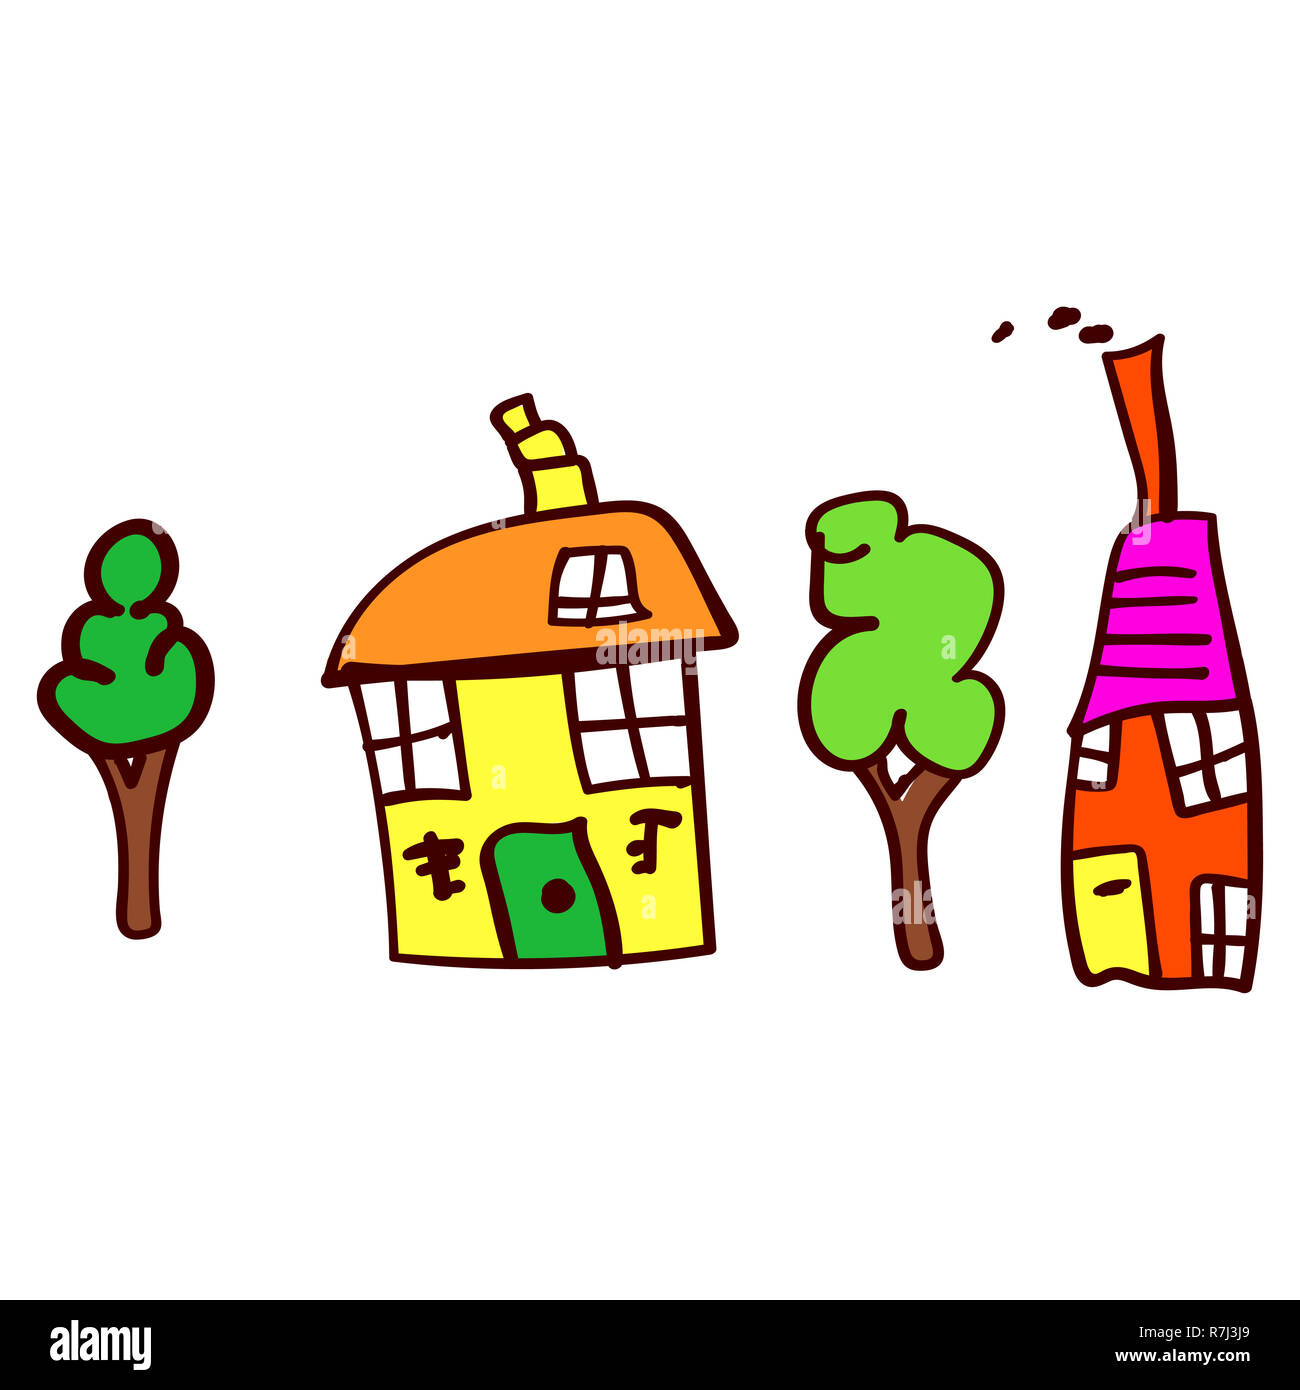 Childrens drawing with two houses and two trees.  illustration. Isolated white background. - Stock Image